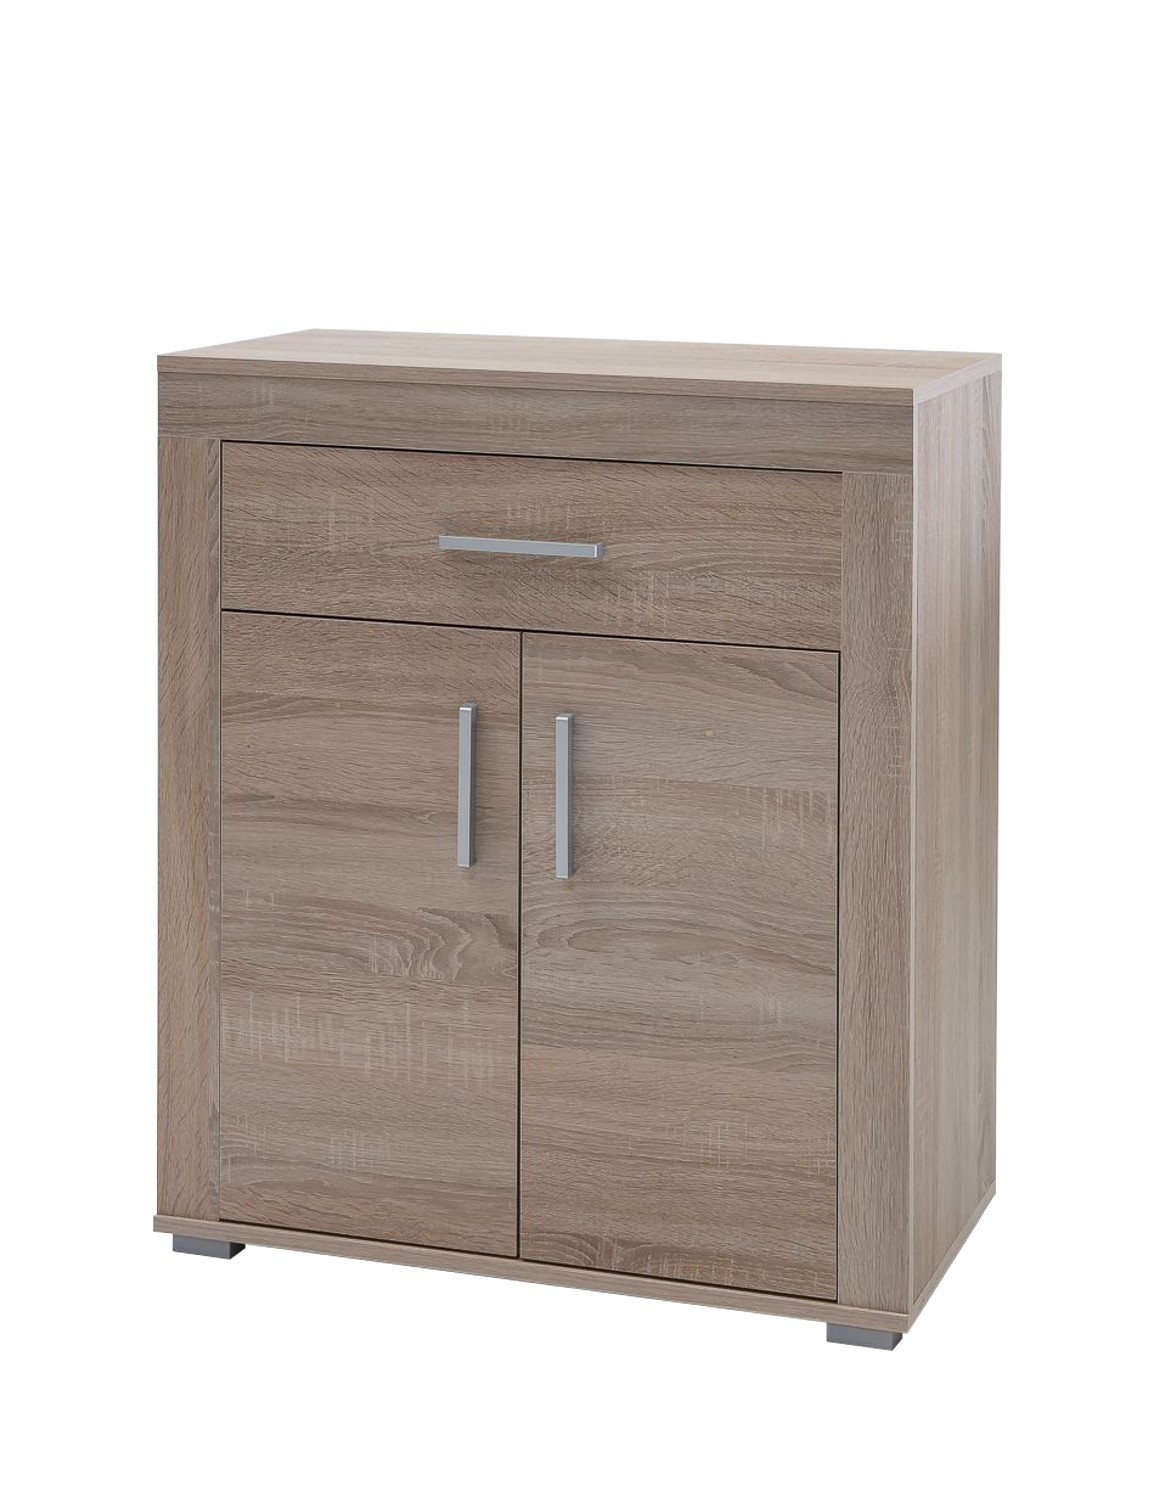 kommode lake schuhschrank garderobe mit schublade und 2 t ren 70 cm sonoma ebay. Black Bedroom Furniture Sets. Home Design Ideas